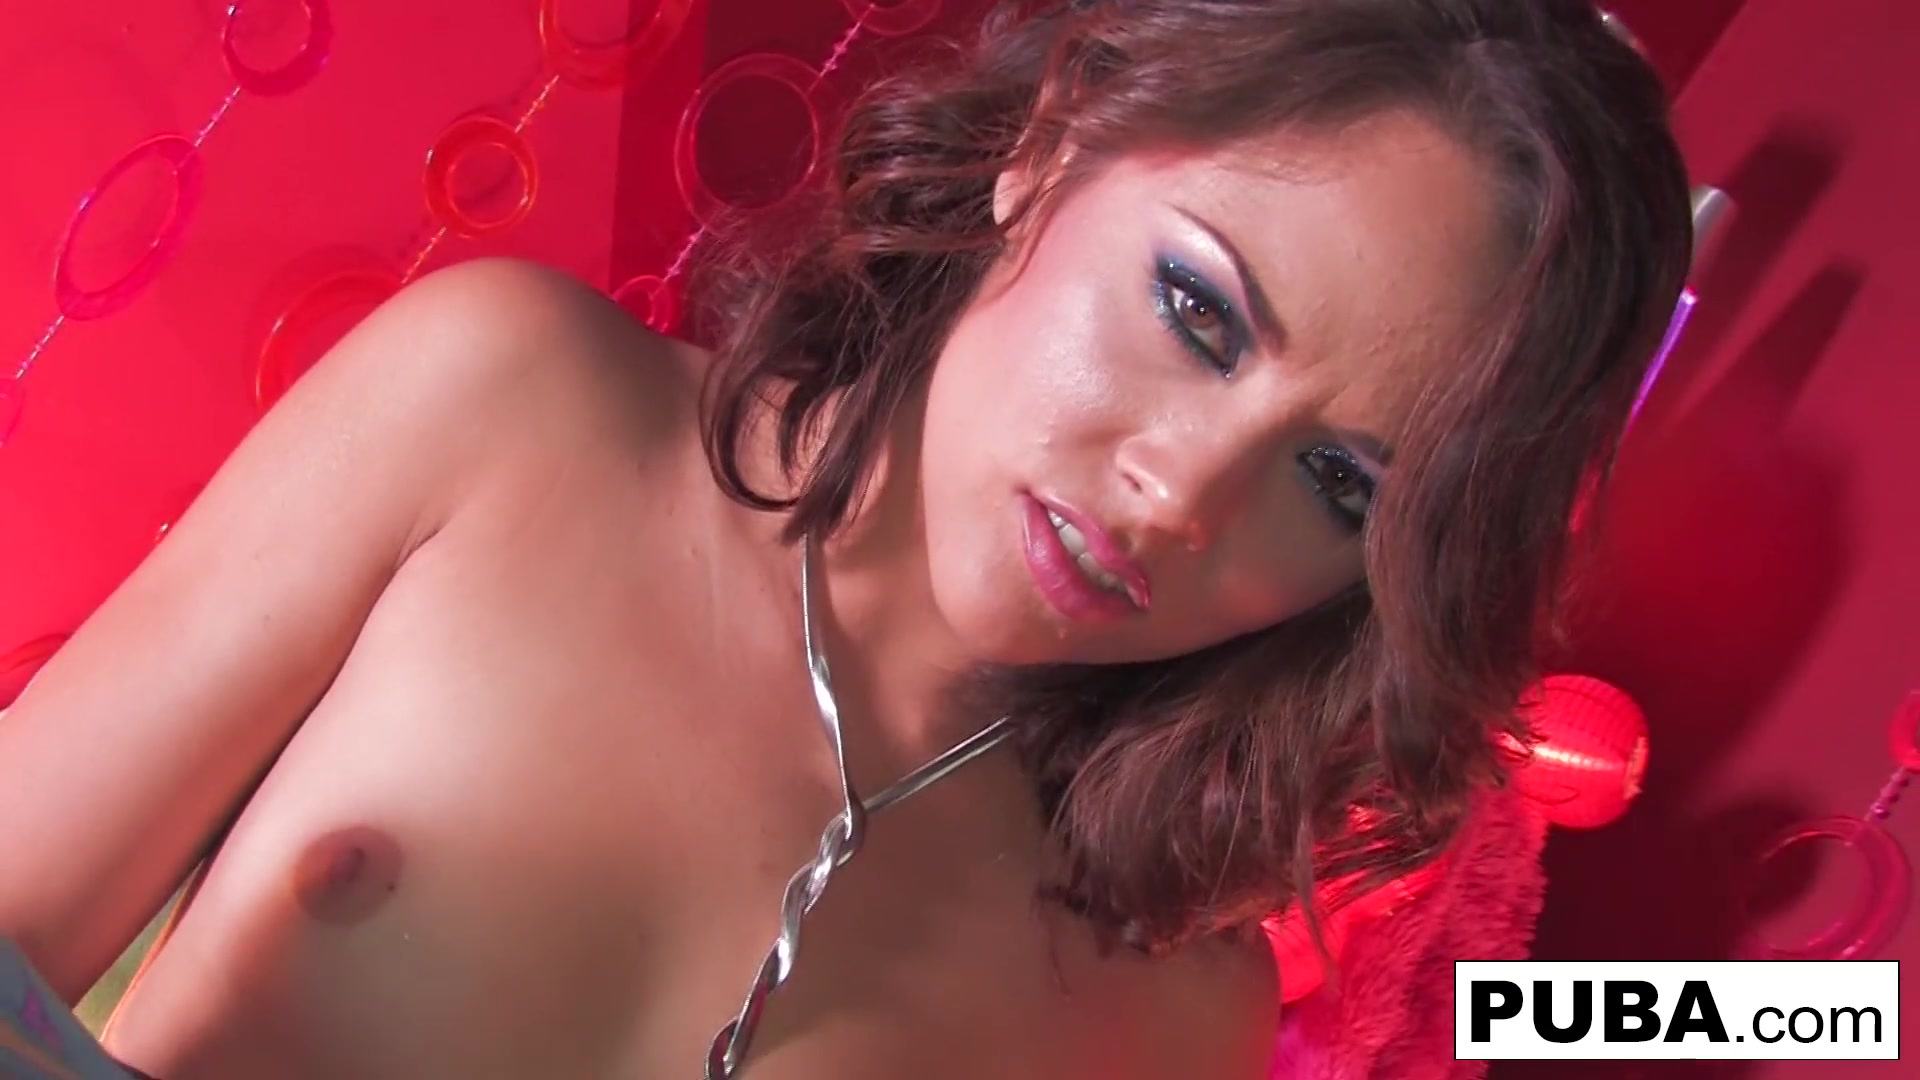 70s Style Kristina Rose Tease And Solo,Pornstar,Puba,Babe,Pussy,Ass,Tits,Nude,Pussy,Ass,Tits,Solo,Masturbation - PUBA hd full figured naked sexy women photos